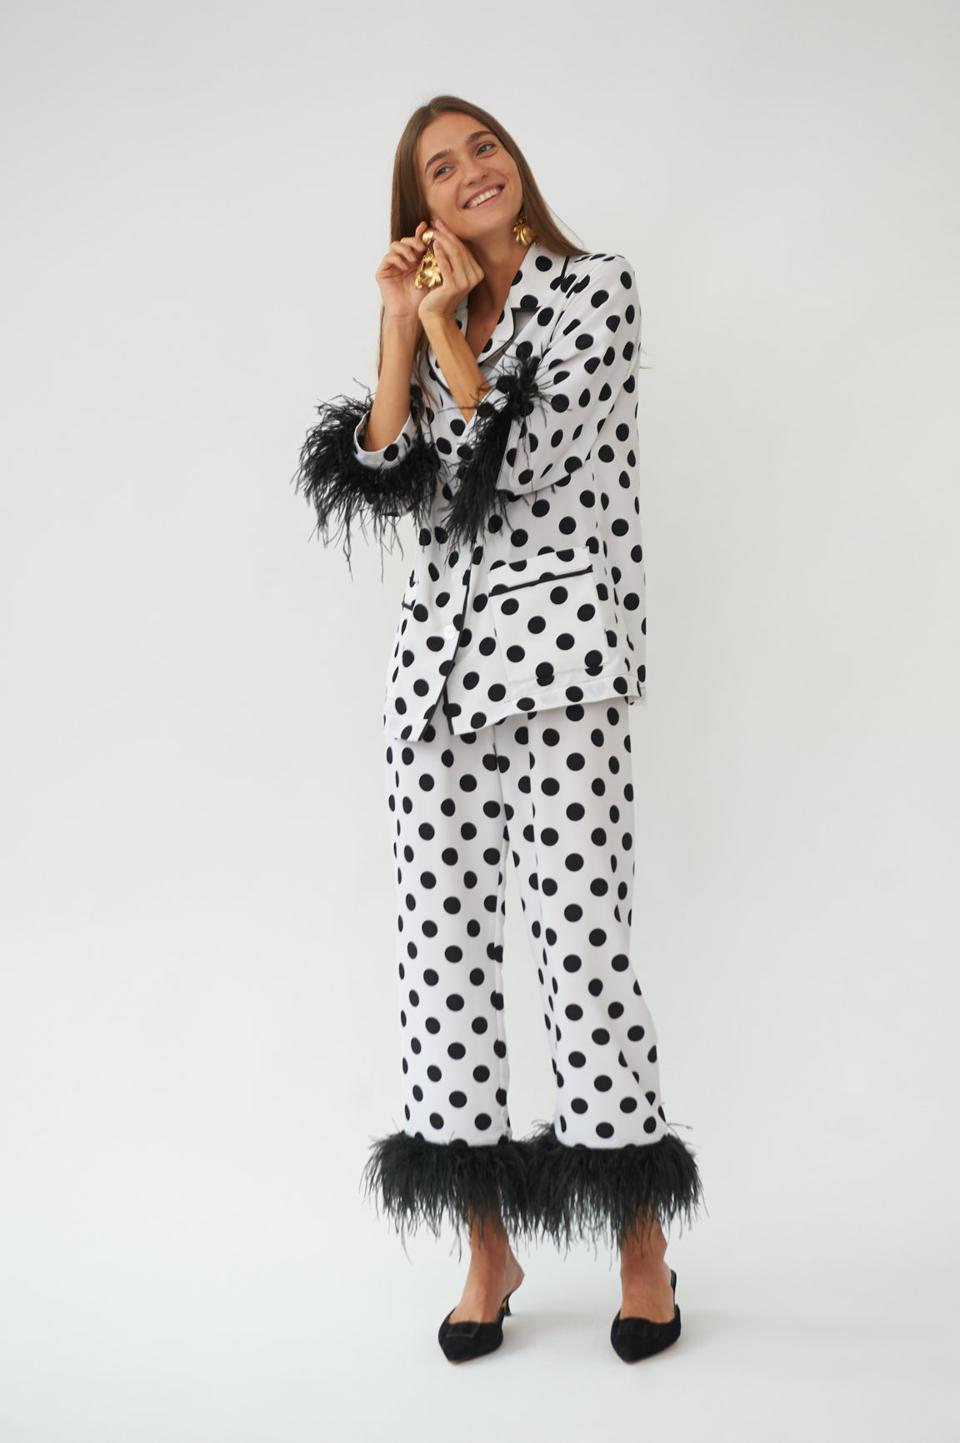 Black and White Party Pajama Set with Feathers in Polka Dot by Sleeper